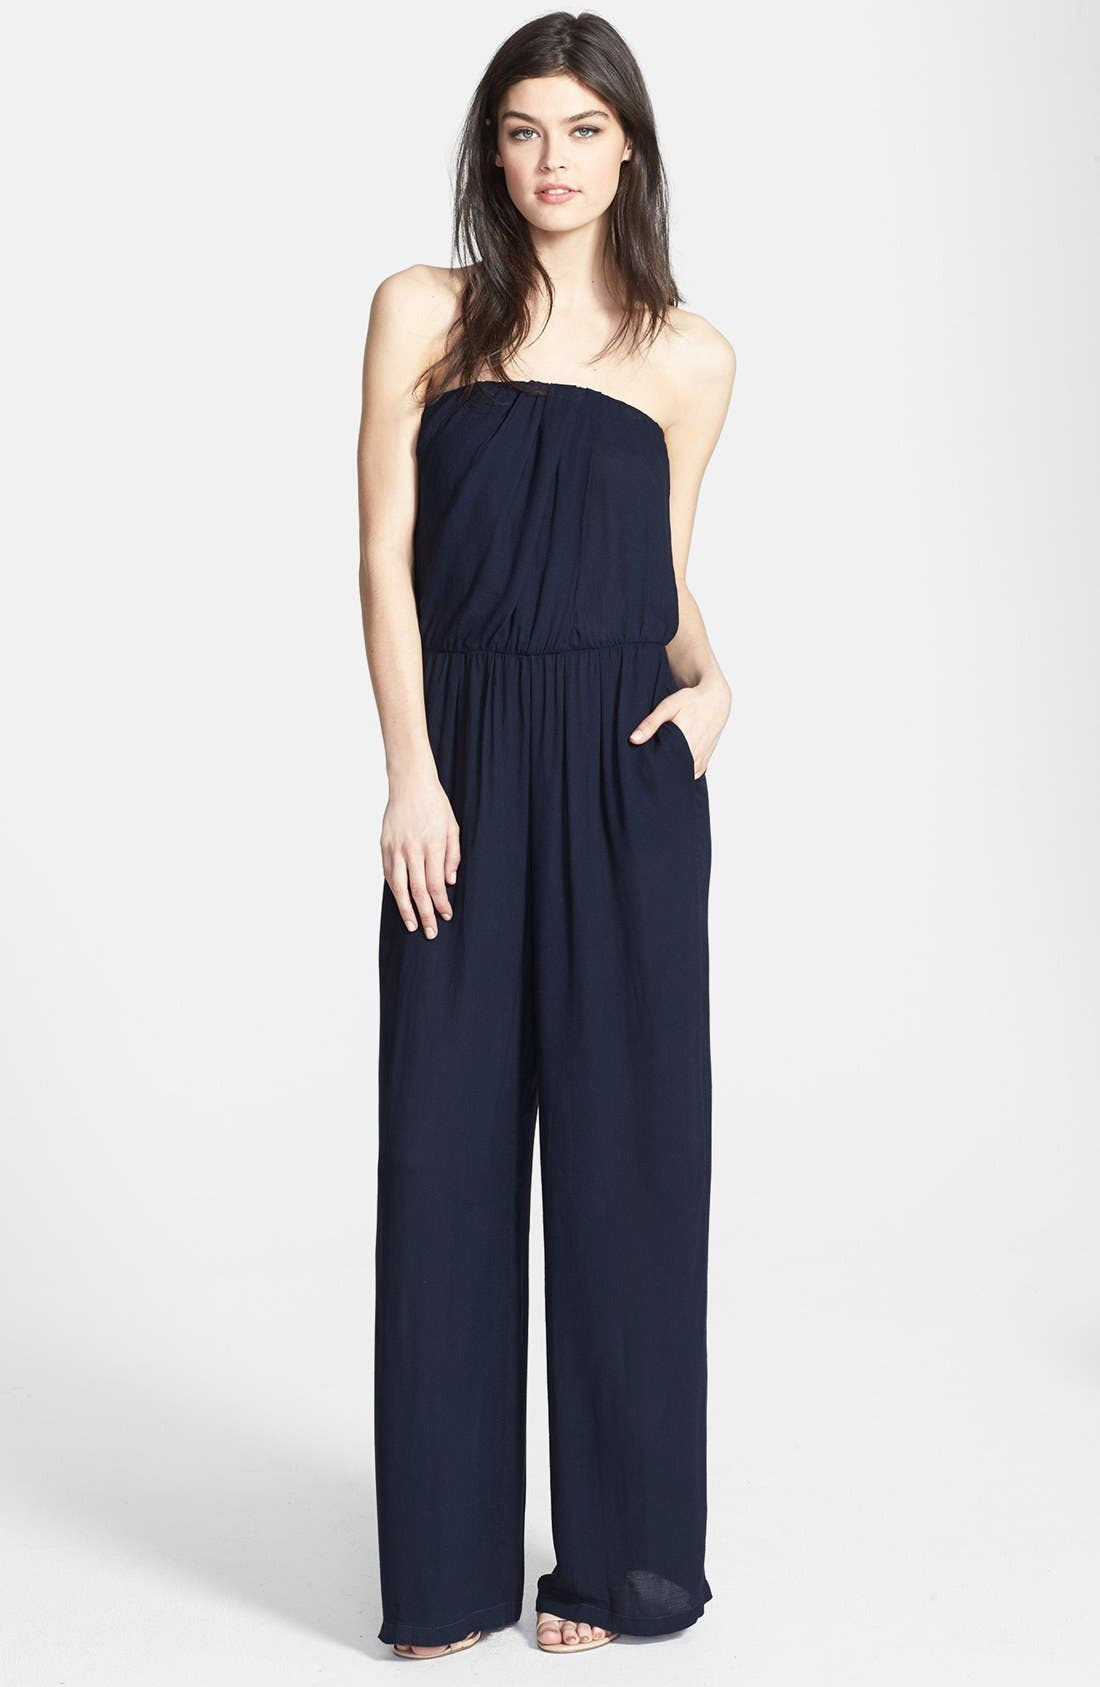 Alternate Image 1 Selected - Young, Fabulous & Broke 'Arie' Strapless Jumpsuit